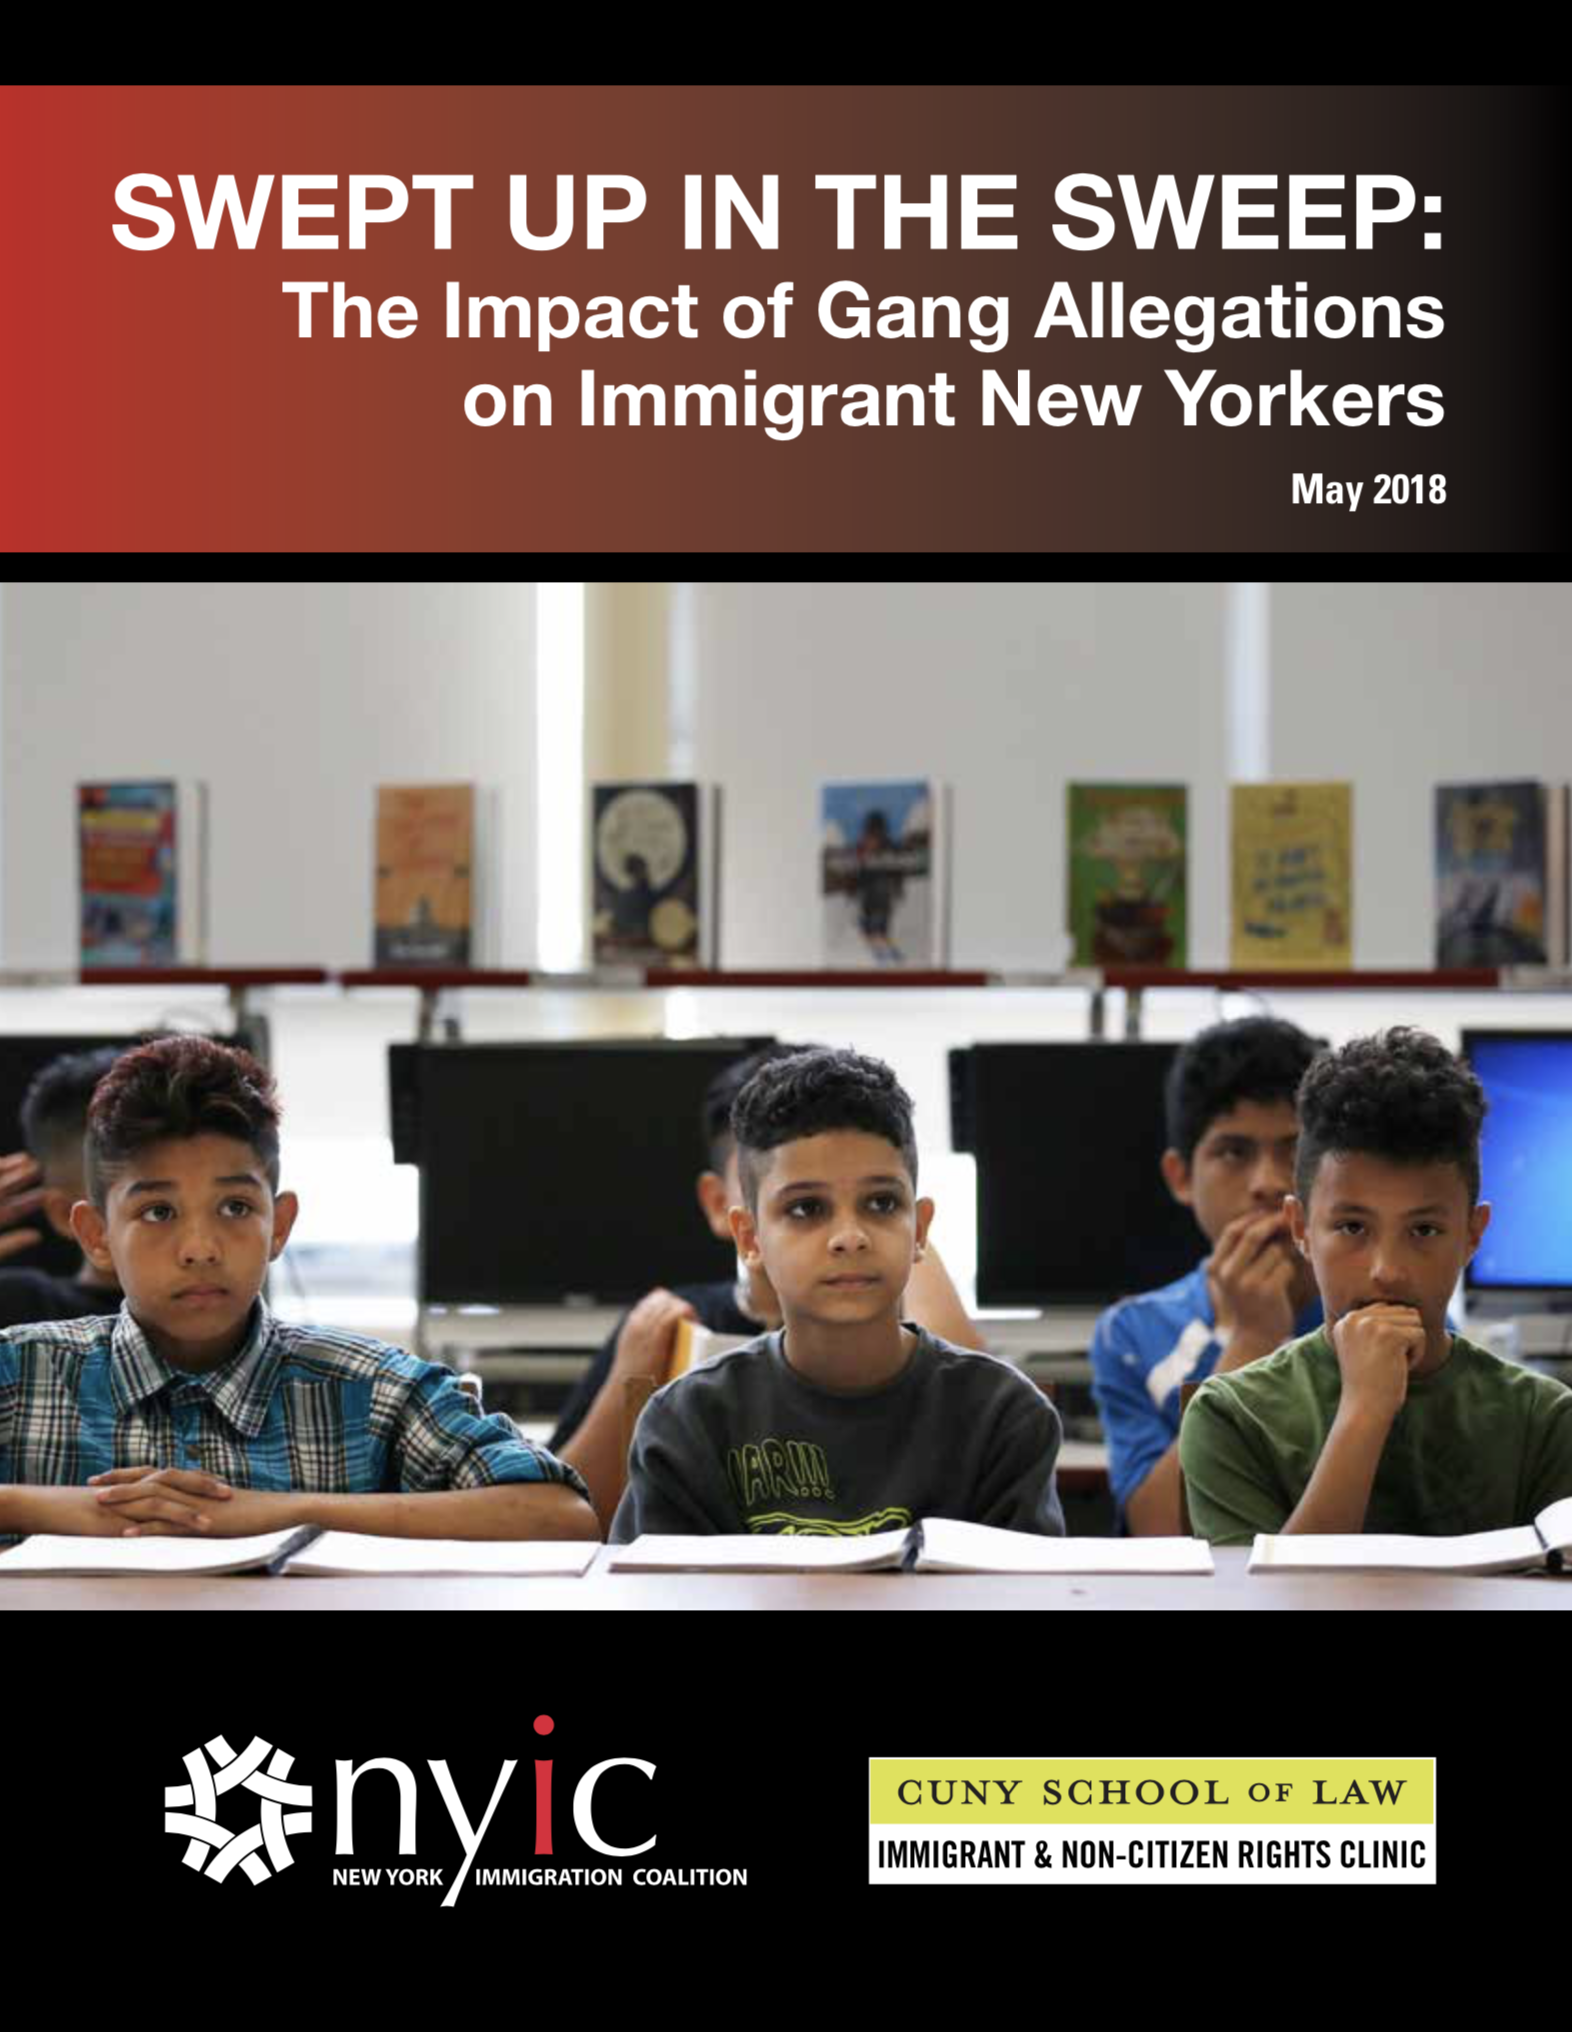 Swept Up in the Sweep: The Impact of Gang Allegations on Immigrant New Yorkers